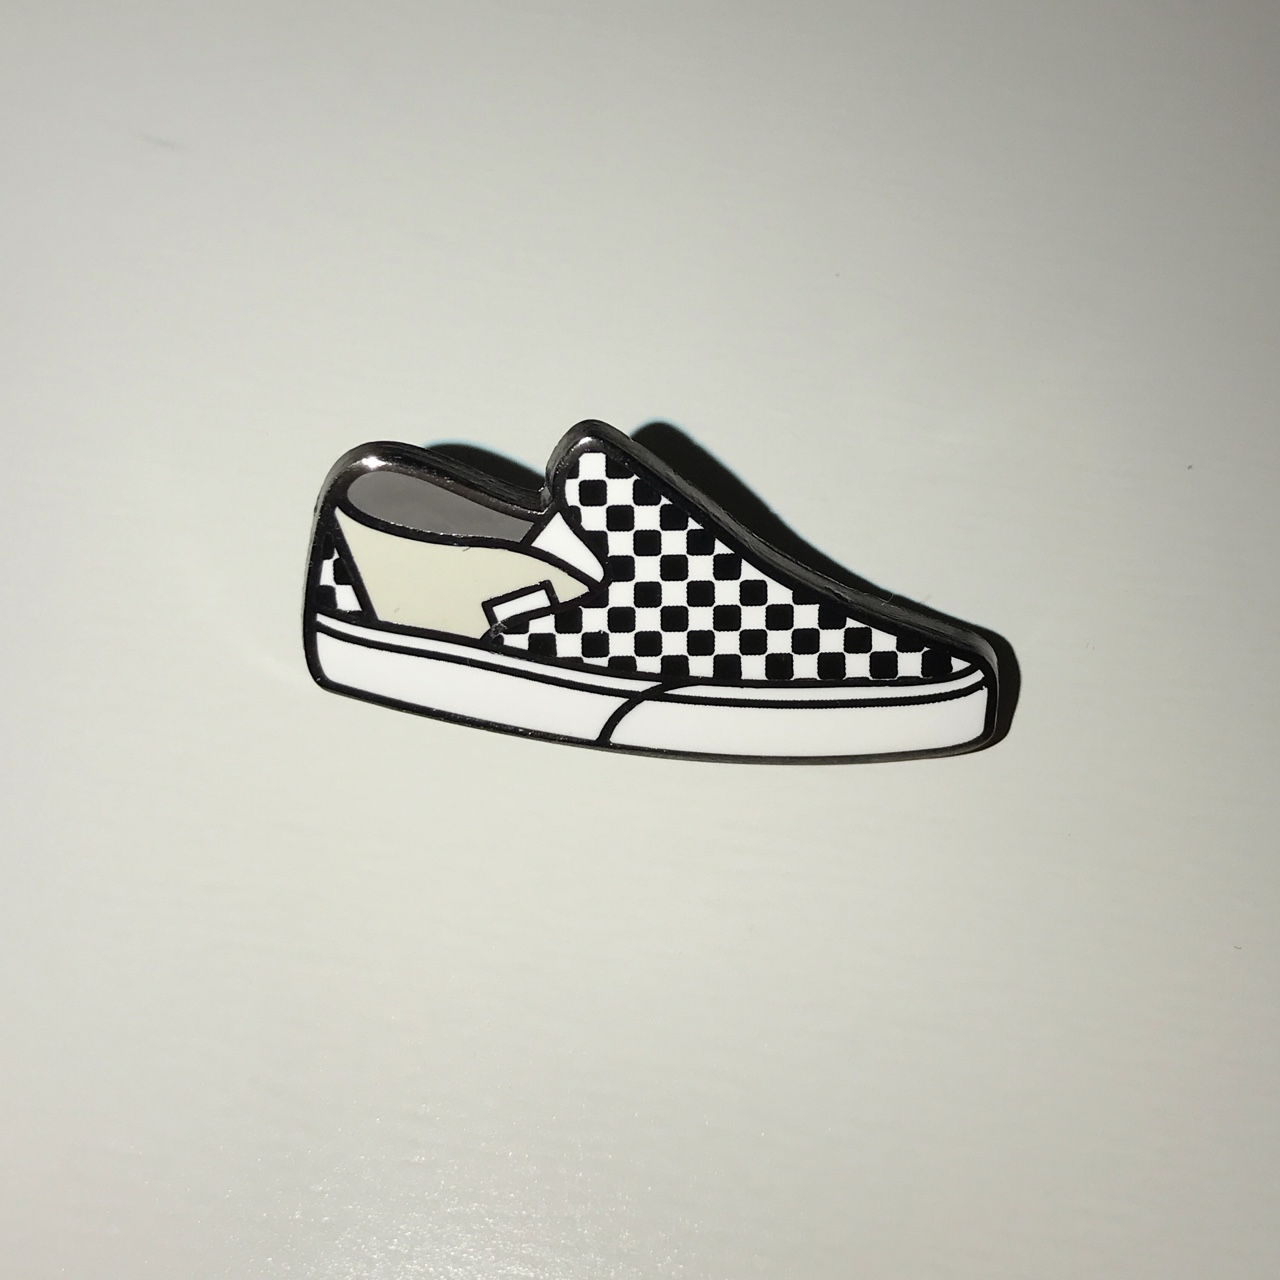 Official Checkerboard Vans Pin Black & White Free Depop